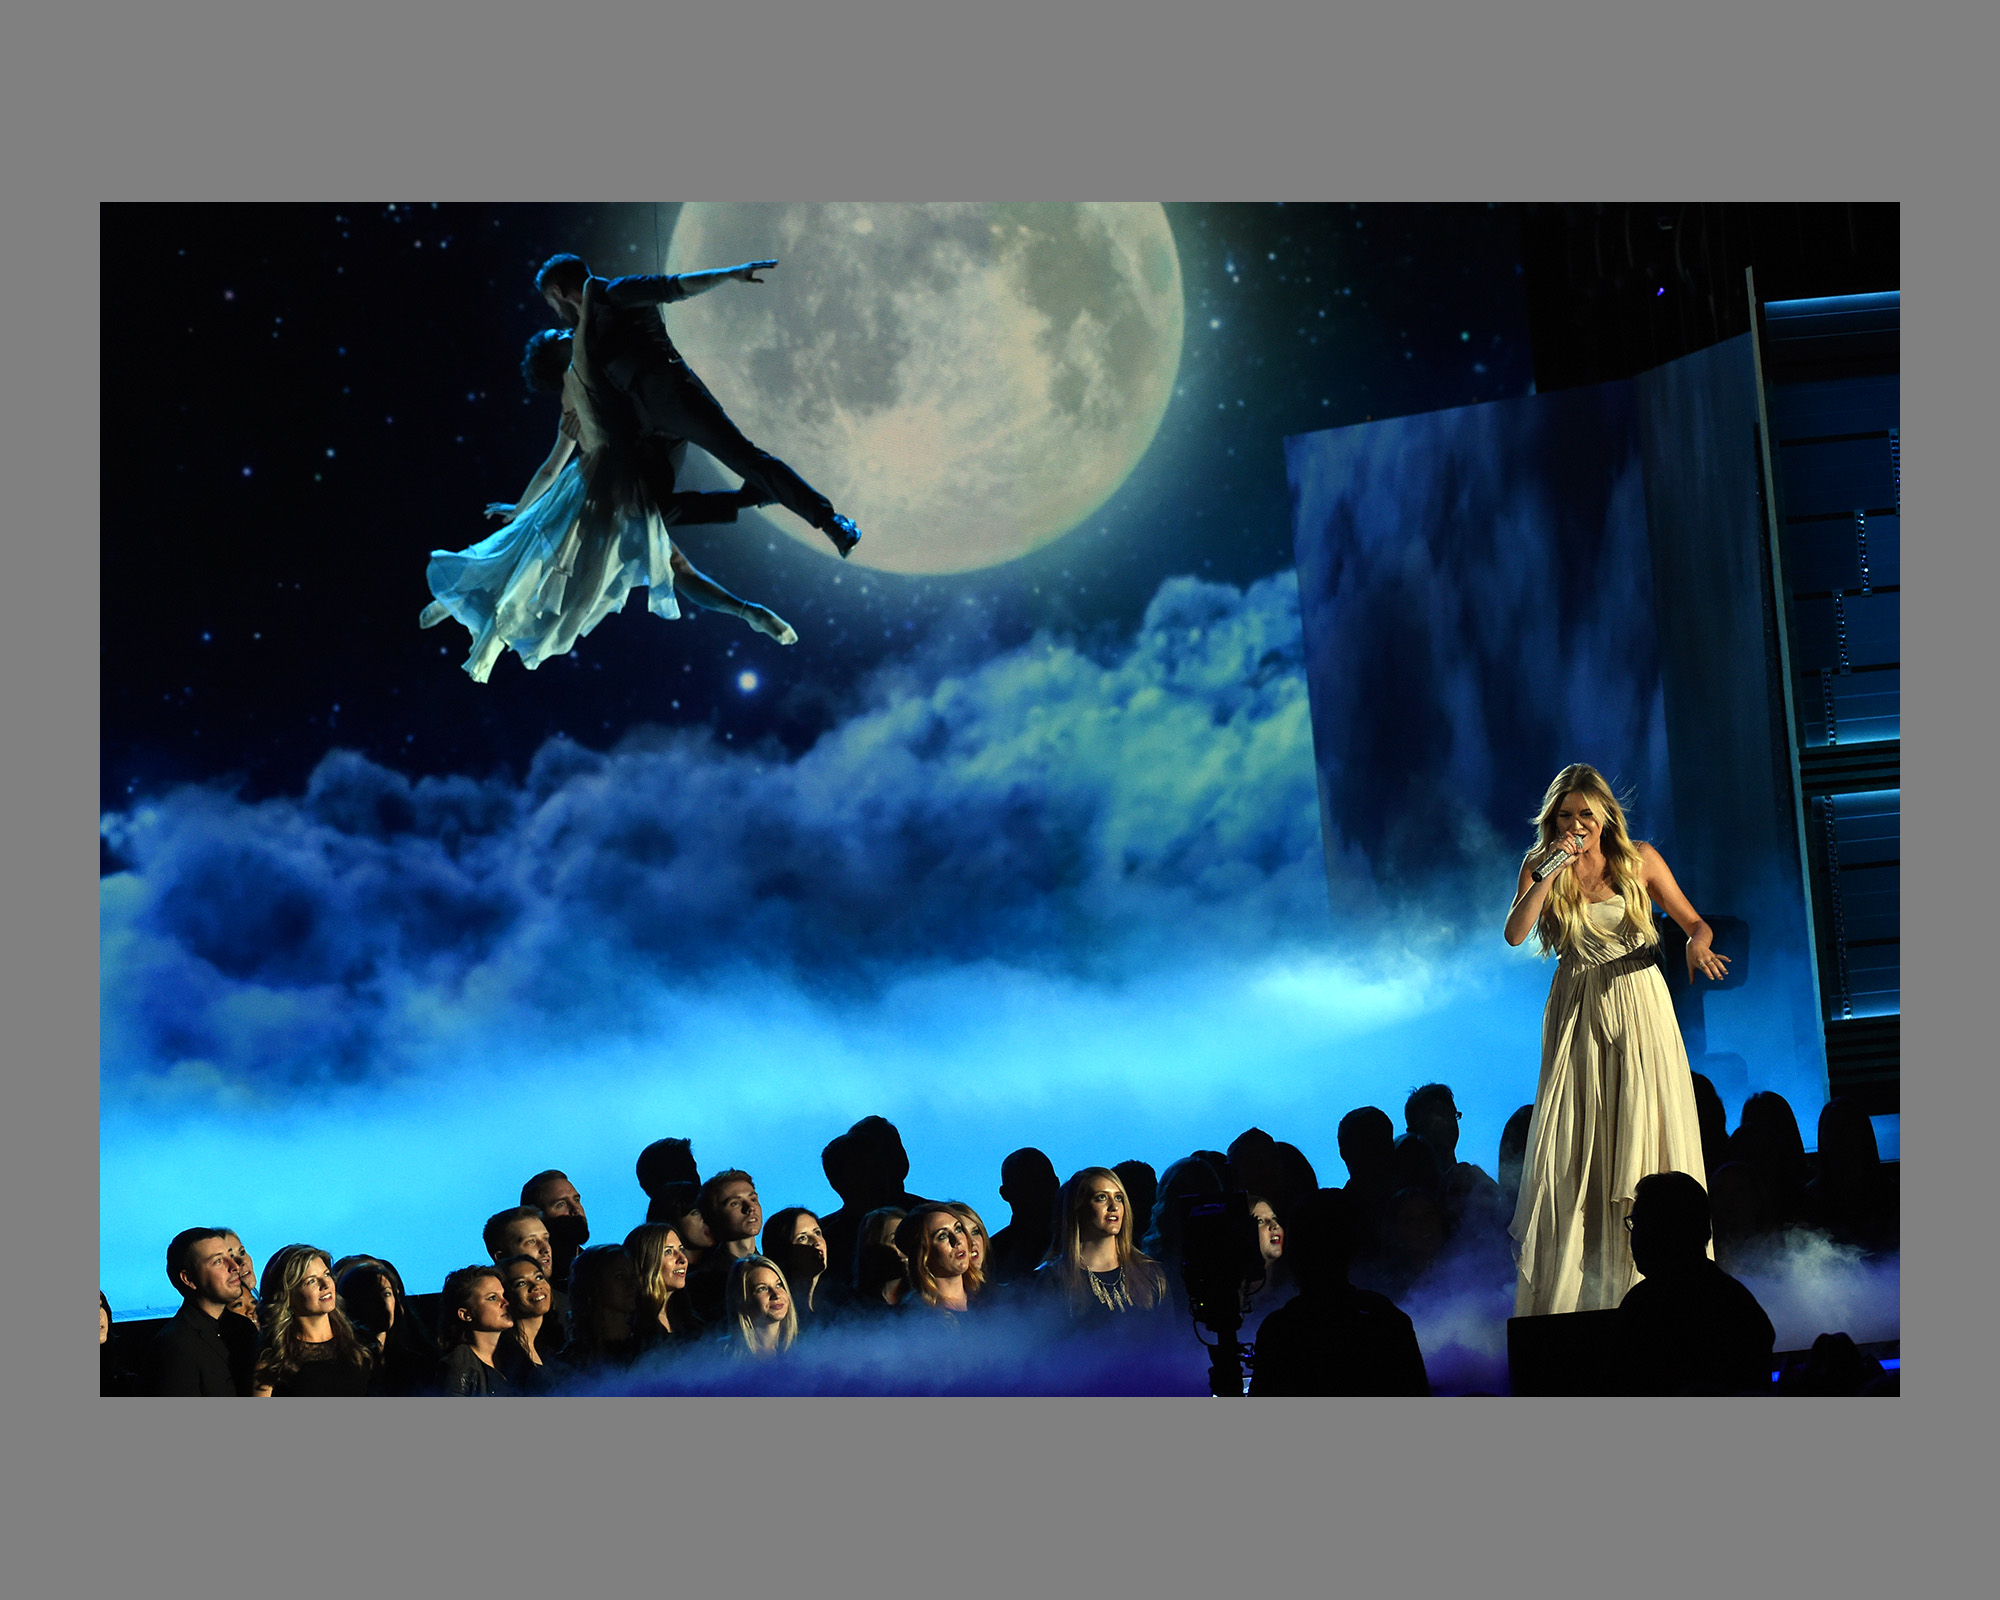 Kelsea Ballerini Performance, Peter Pan at CMA Awards 2016 with Dancer's Travis Wall and Melanie Moore